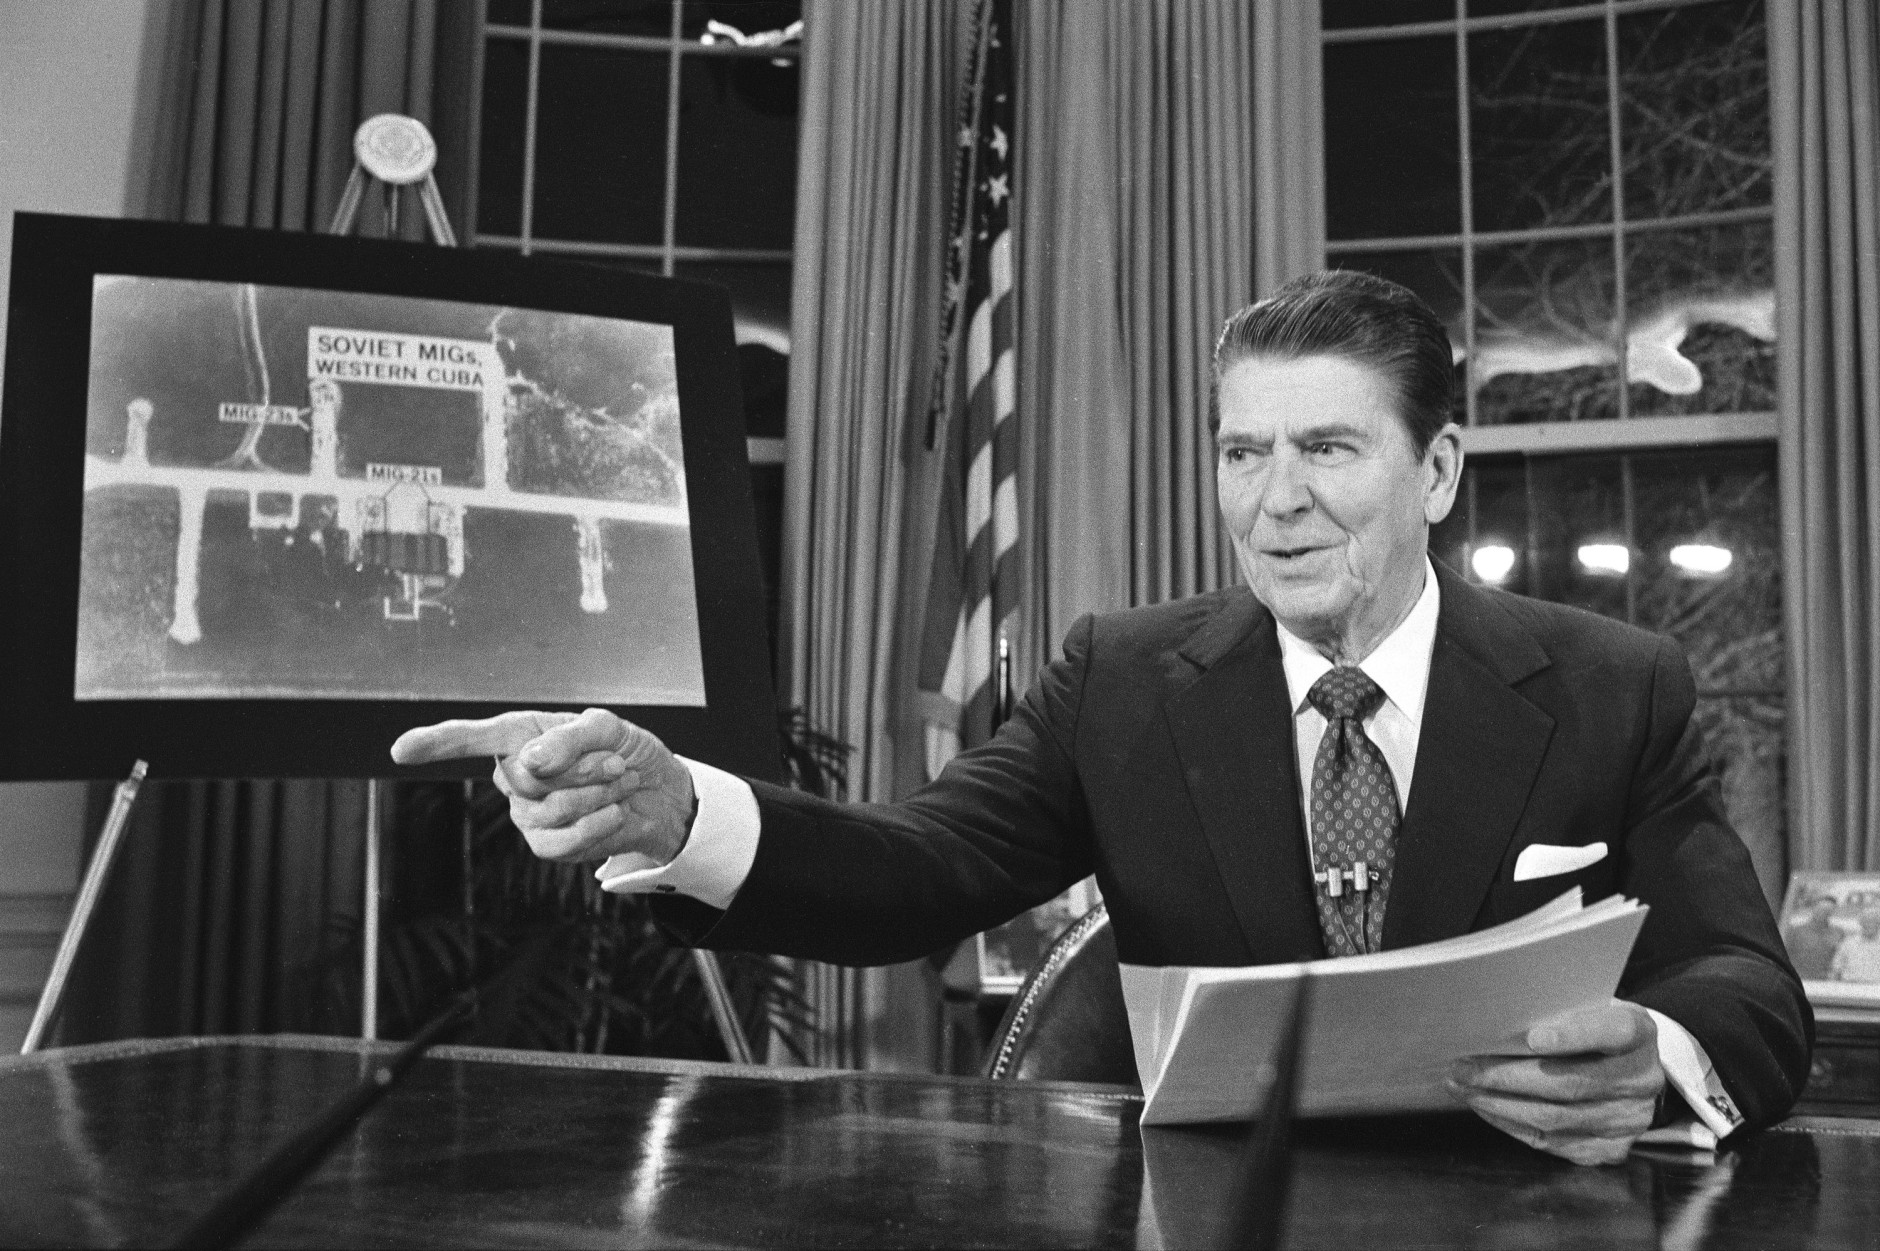 President Reagan points as he addresses the nation on television March 23, 1983, from Washington in support of his proposed defense budget.  At left is a picture of Soviet Migs in western Cuba according to the White House.  The House voted earlier to cut the defense budget in favor of social programs.  (AP Photo/Dennis Cook)